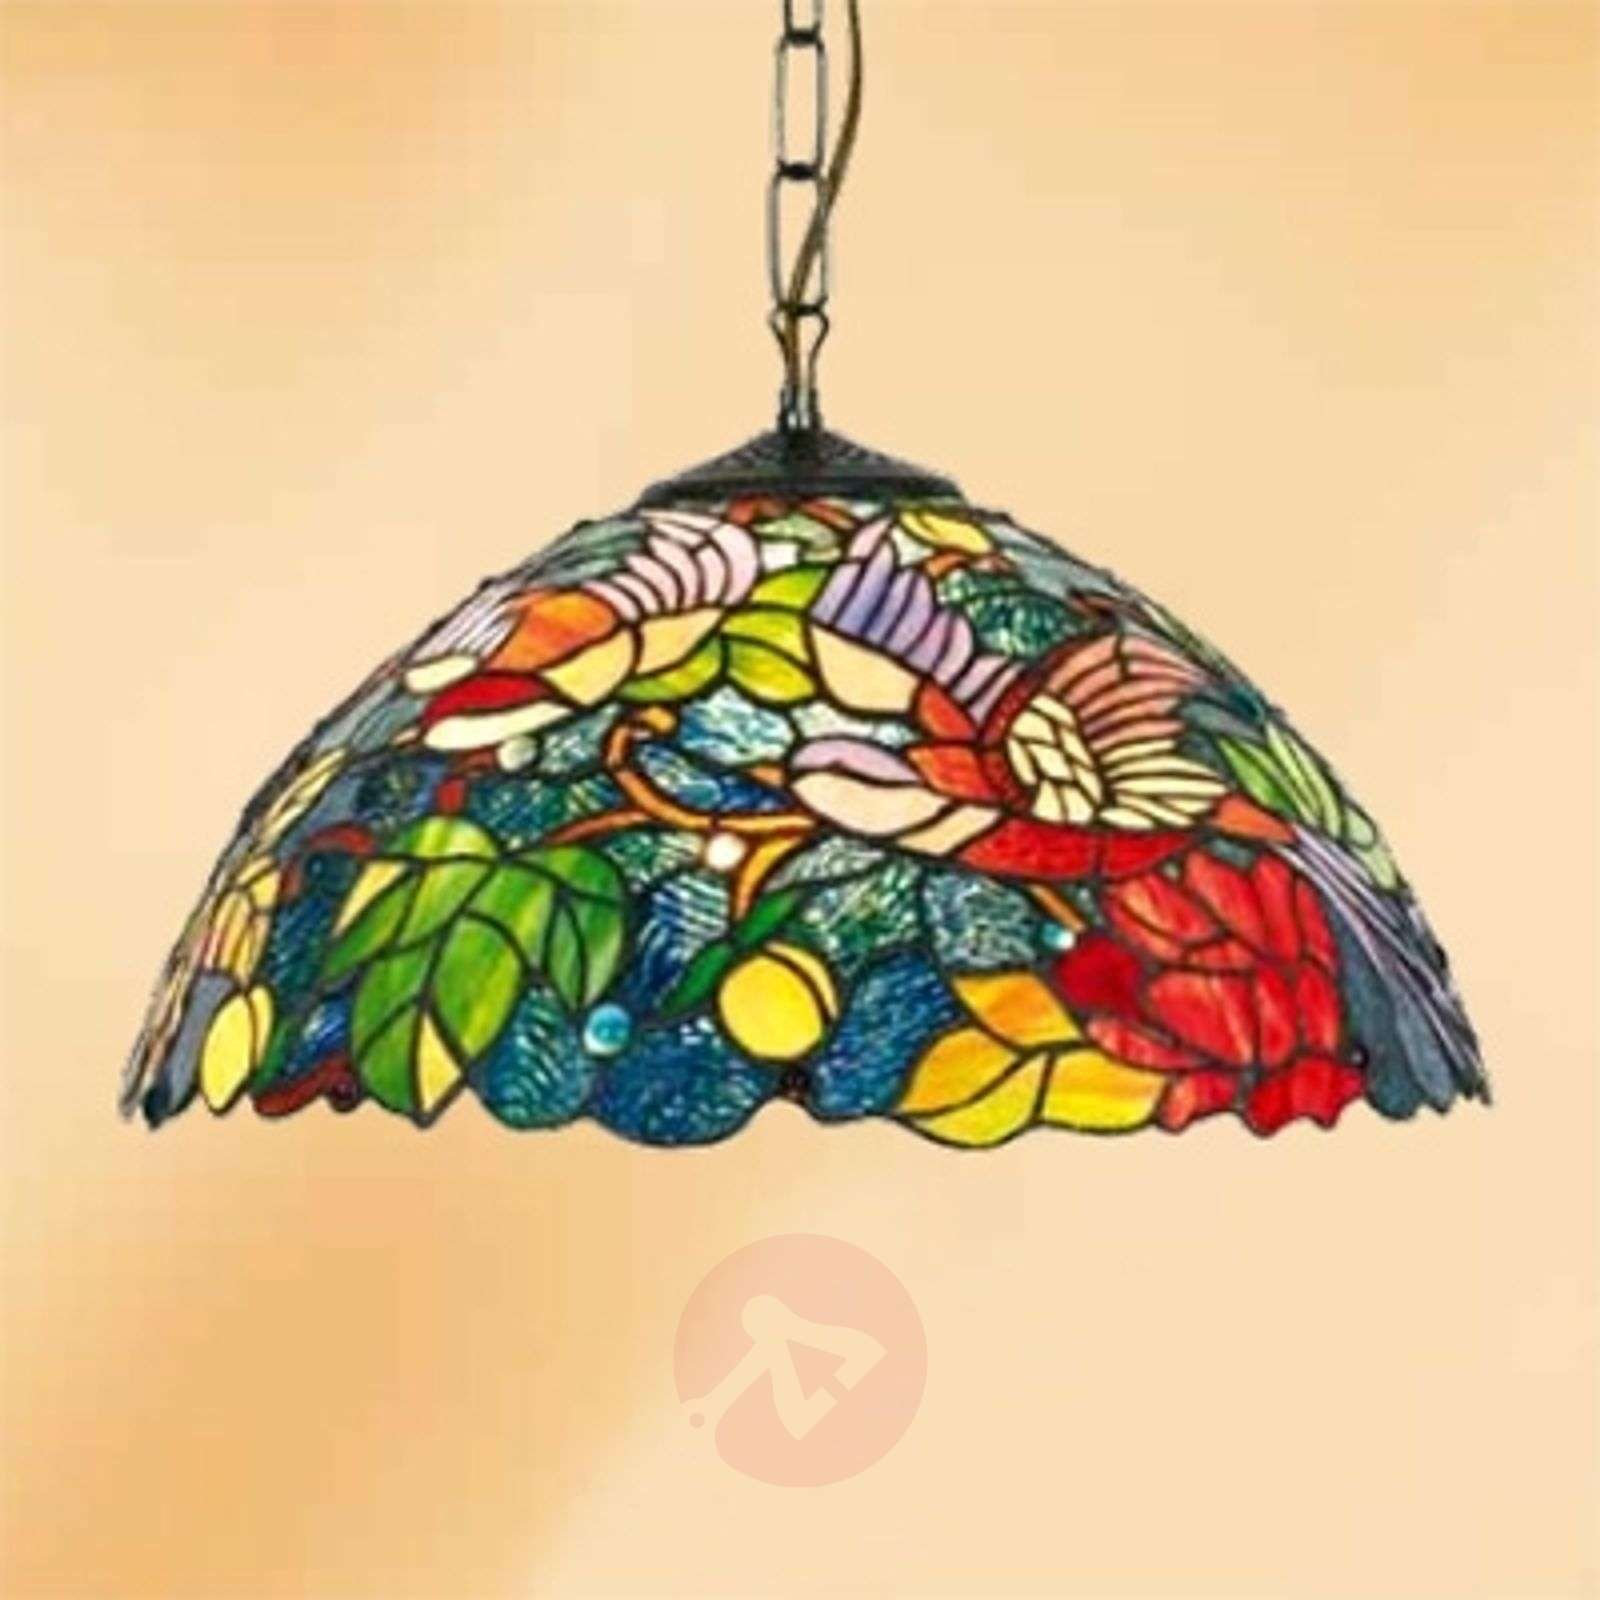 Attractive hanging light Sienna, 1-bulb-1032291-01